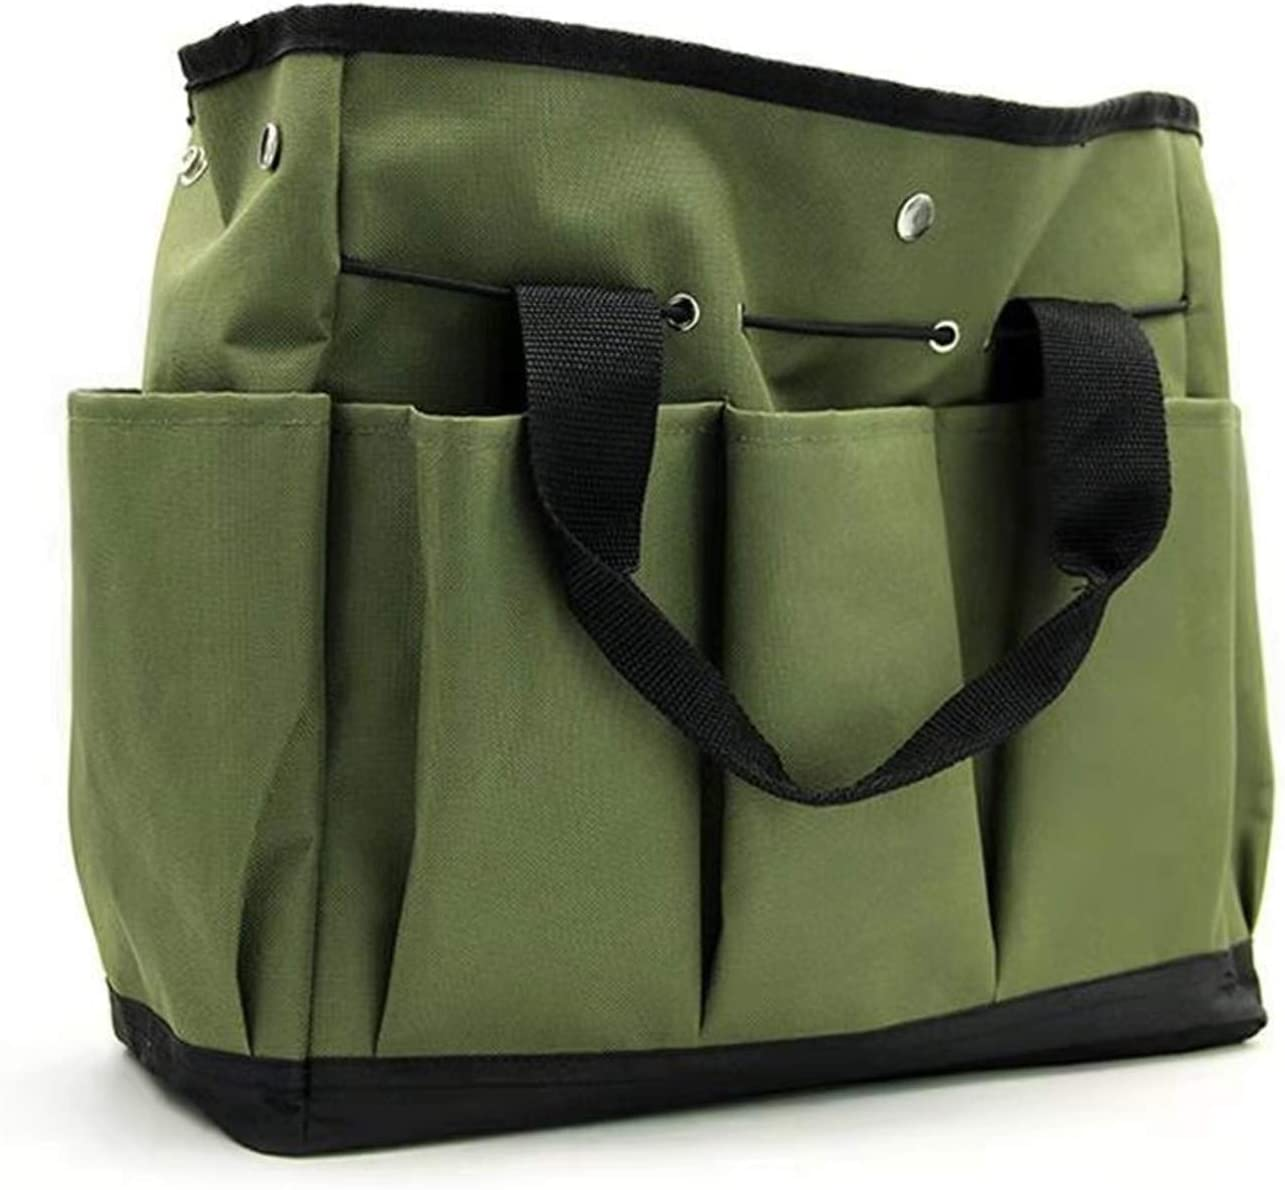 Garden Tool Bag Gardening Tool Organizer Gardening Tote Garden Tool Holder Garden Tool Pocket Garden Tool Carrier with 9 Pocket Dark Green Color(Not Include Tool)